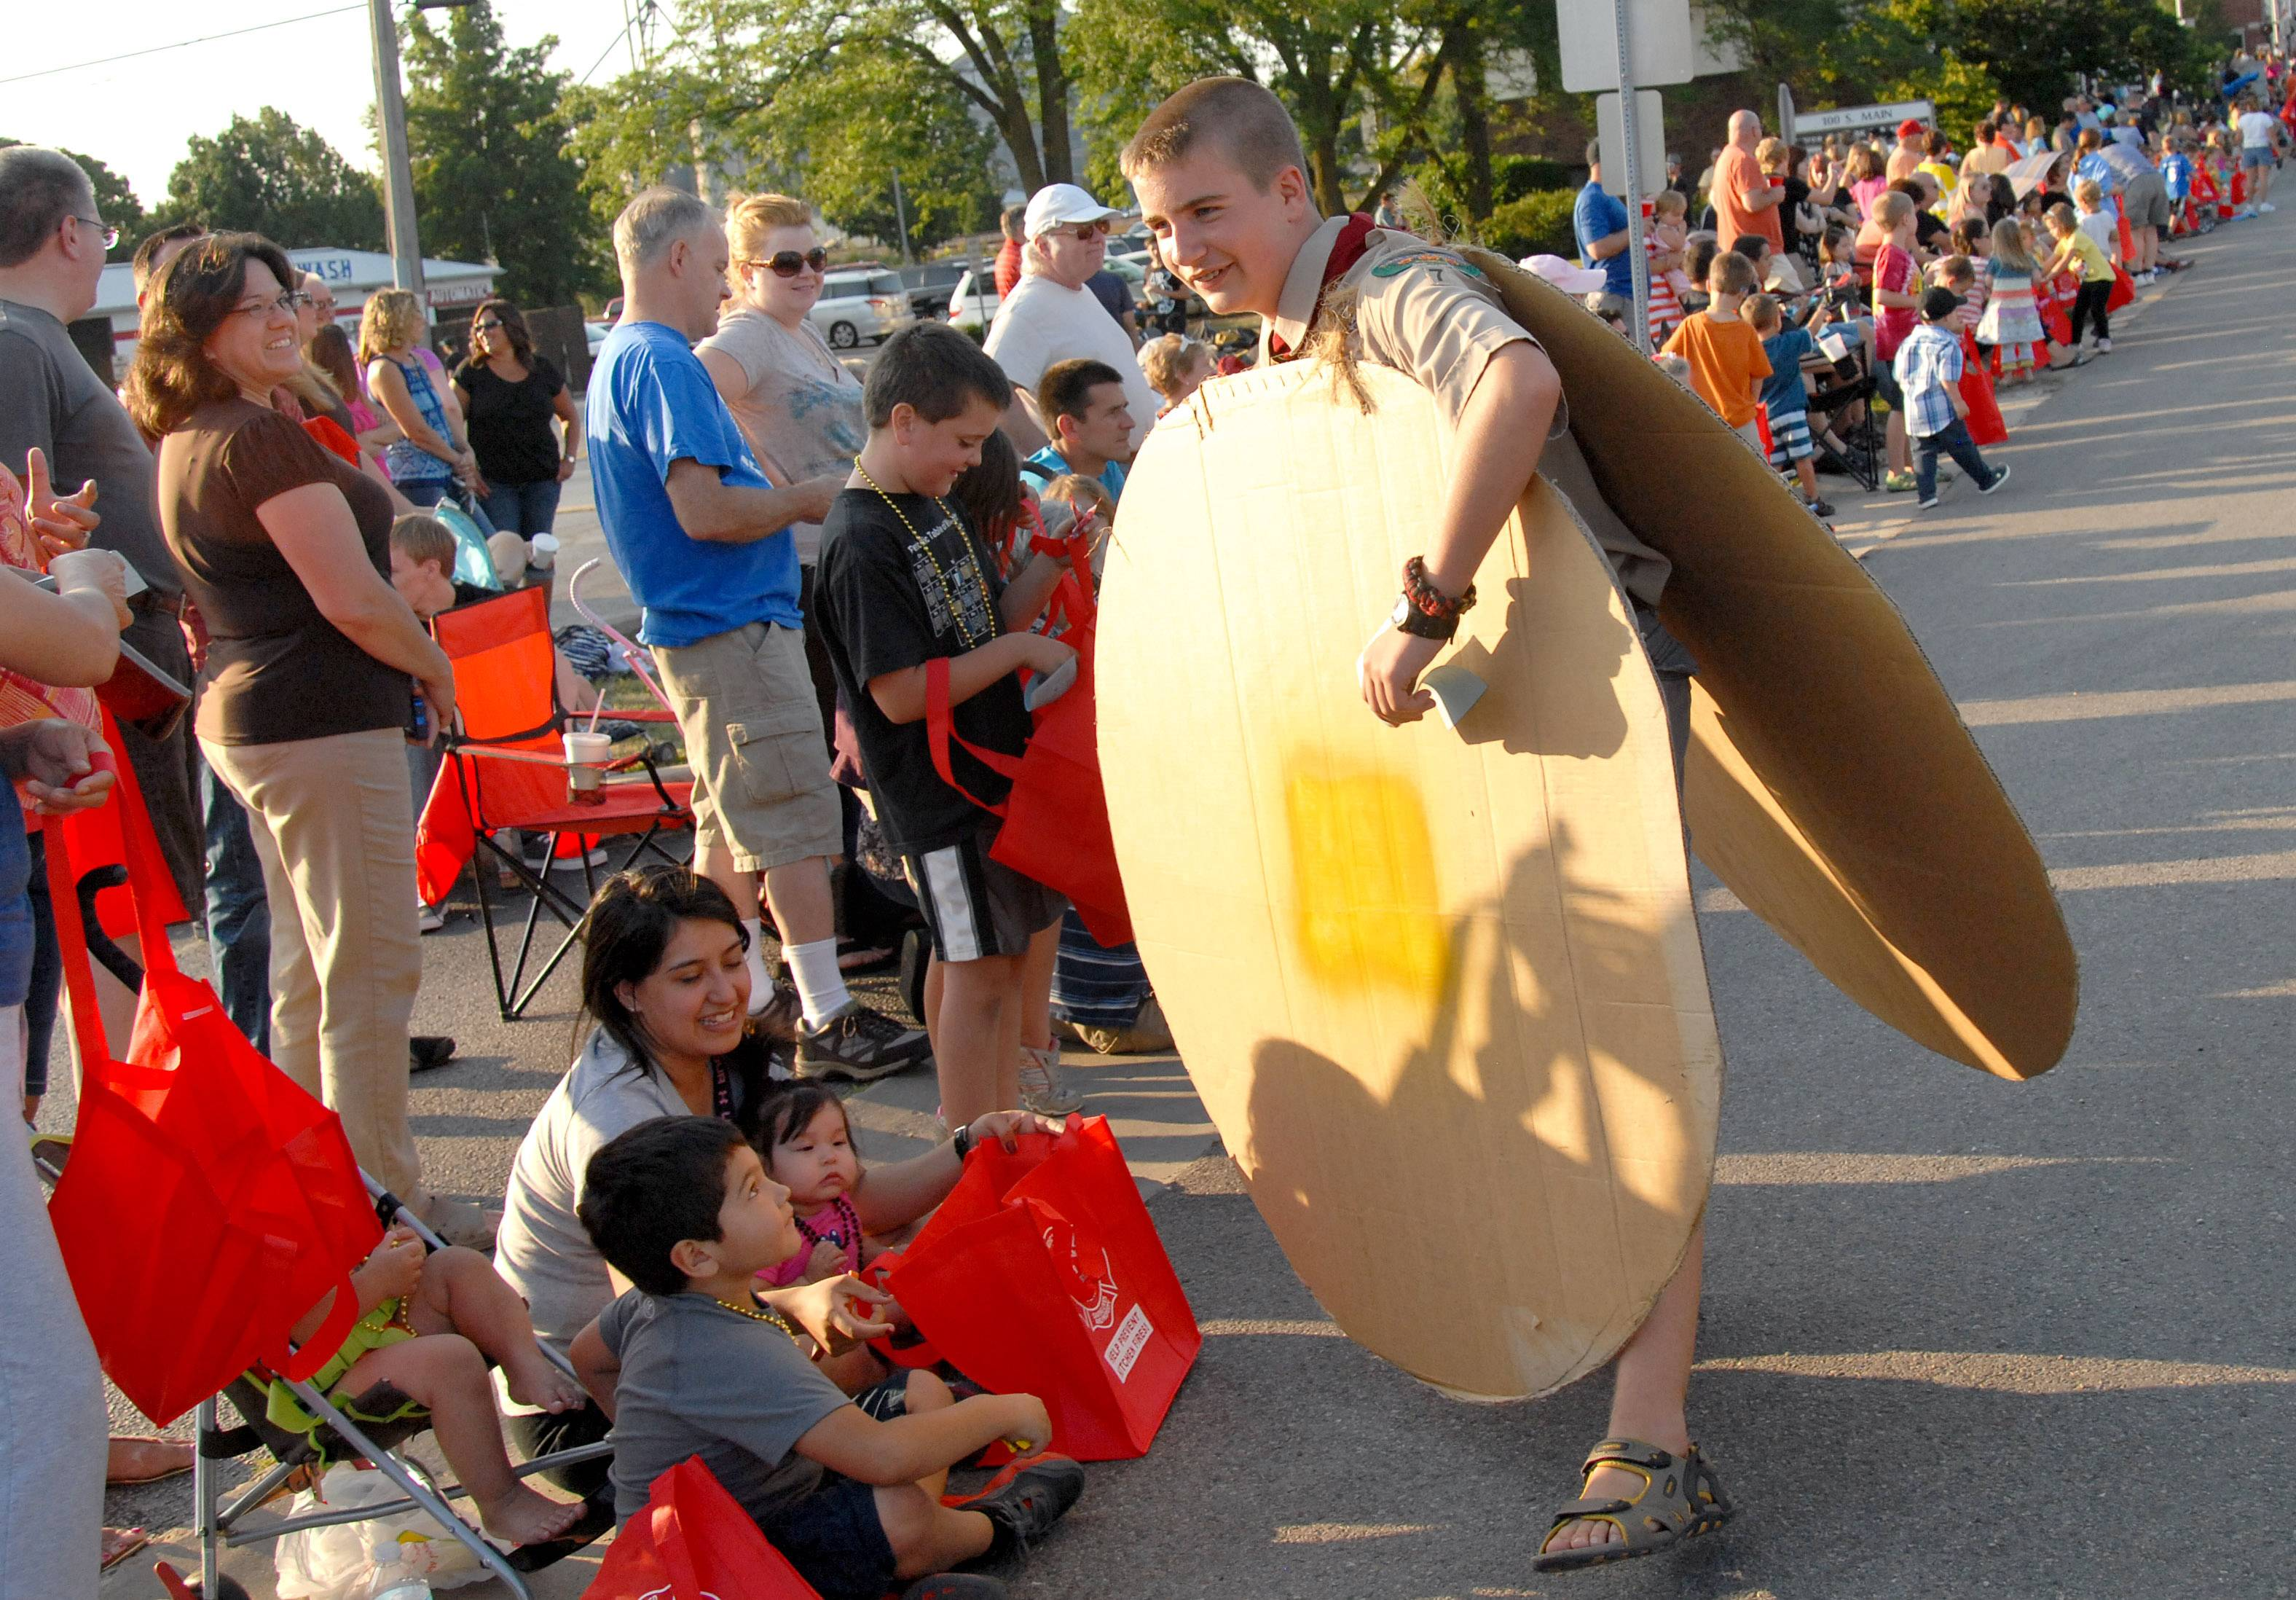 Dressed as a pancake, RJ Herra, 11, of Elburn passes out fliers for Boy Scout Troop 7's pancake breakfast at a previous Elburn Days parade. This year's breakfast is from 7 to 10:30 a.m. Saturday, Aug. 16, at the American Legion Hall, 112 N. Main St., Elburn.